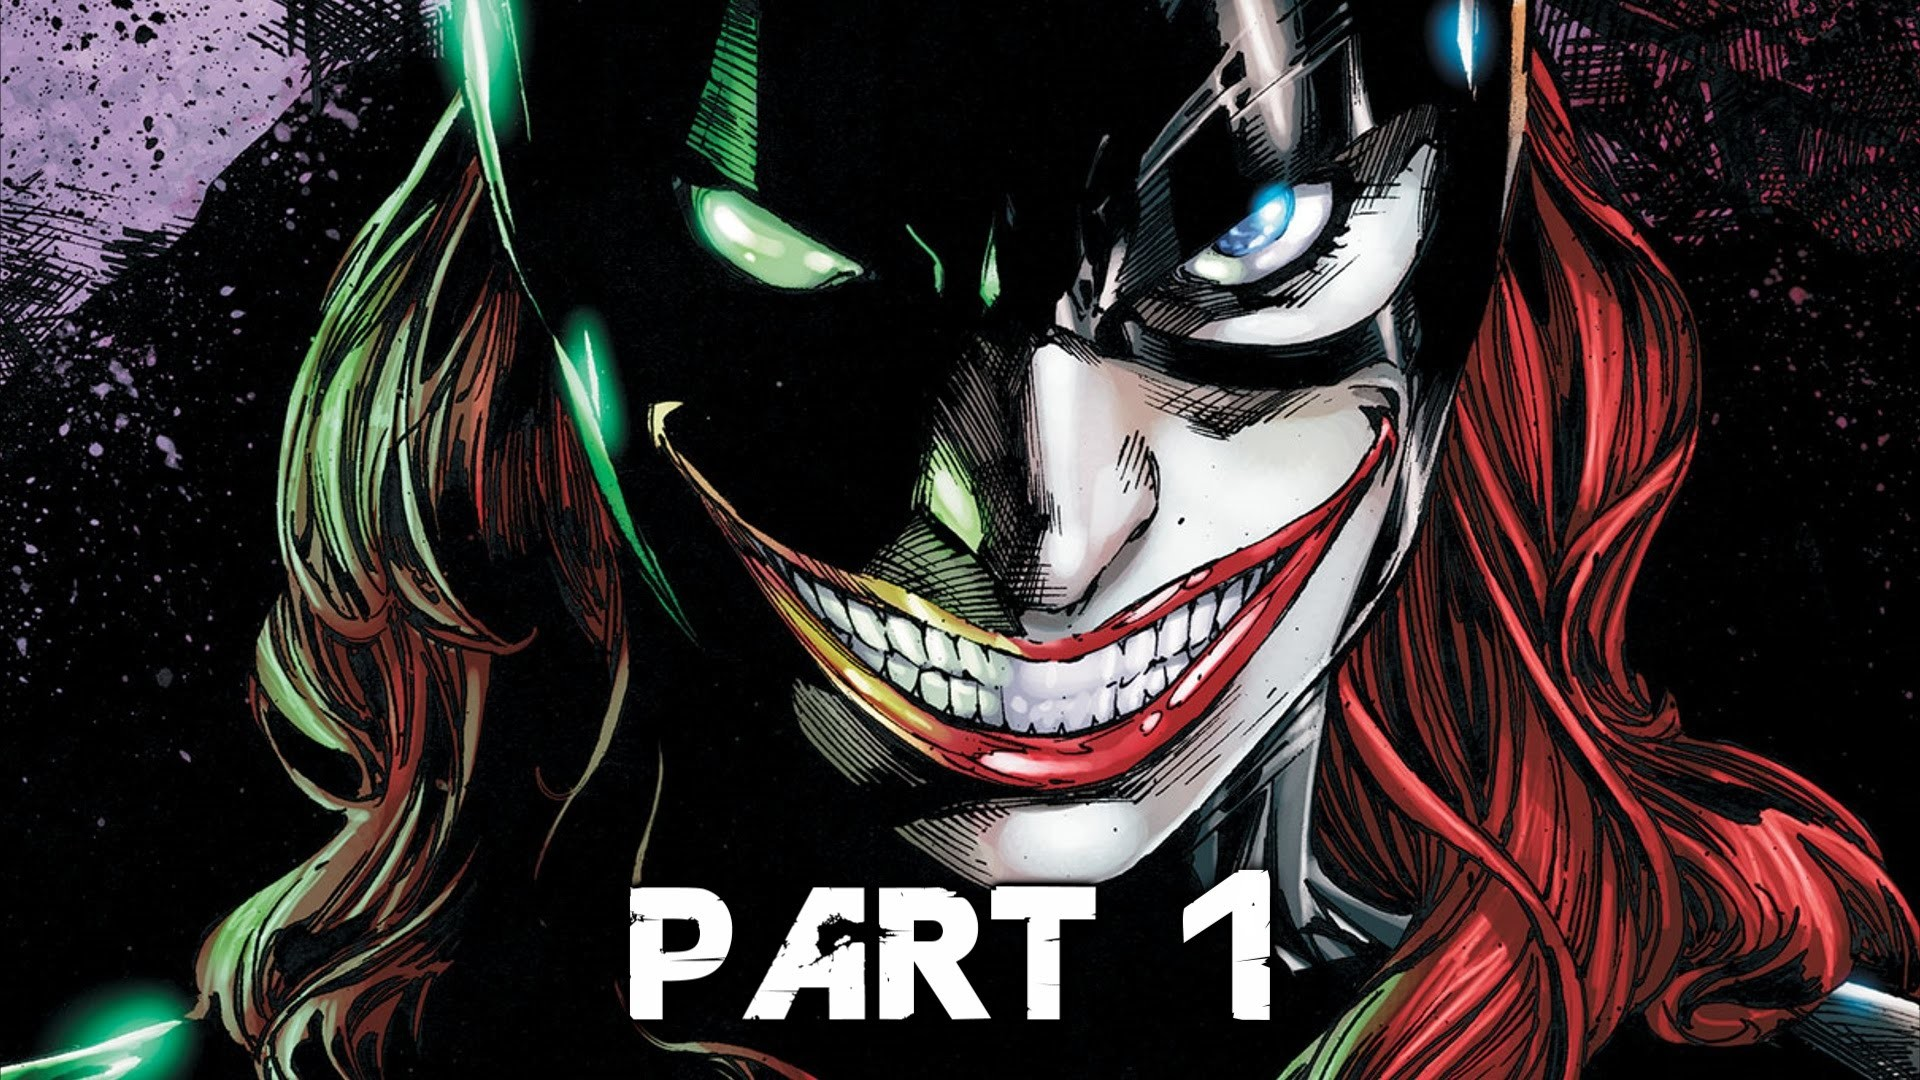 1920x1080 Batgirl A Matter of Family Walkthrough Gameplay Part 1 - Joker (Batman  Arkham Knight DLC) - YouTube